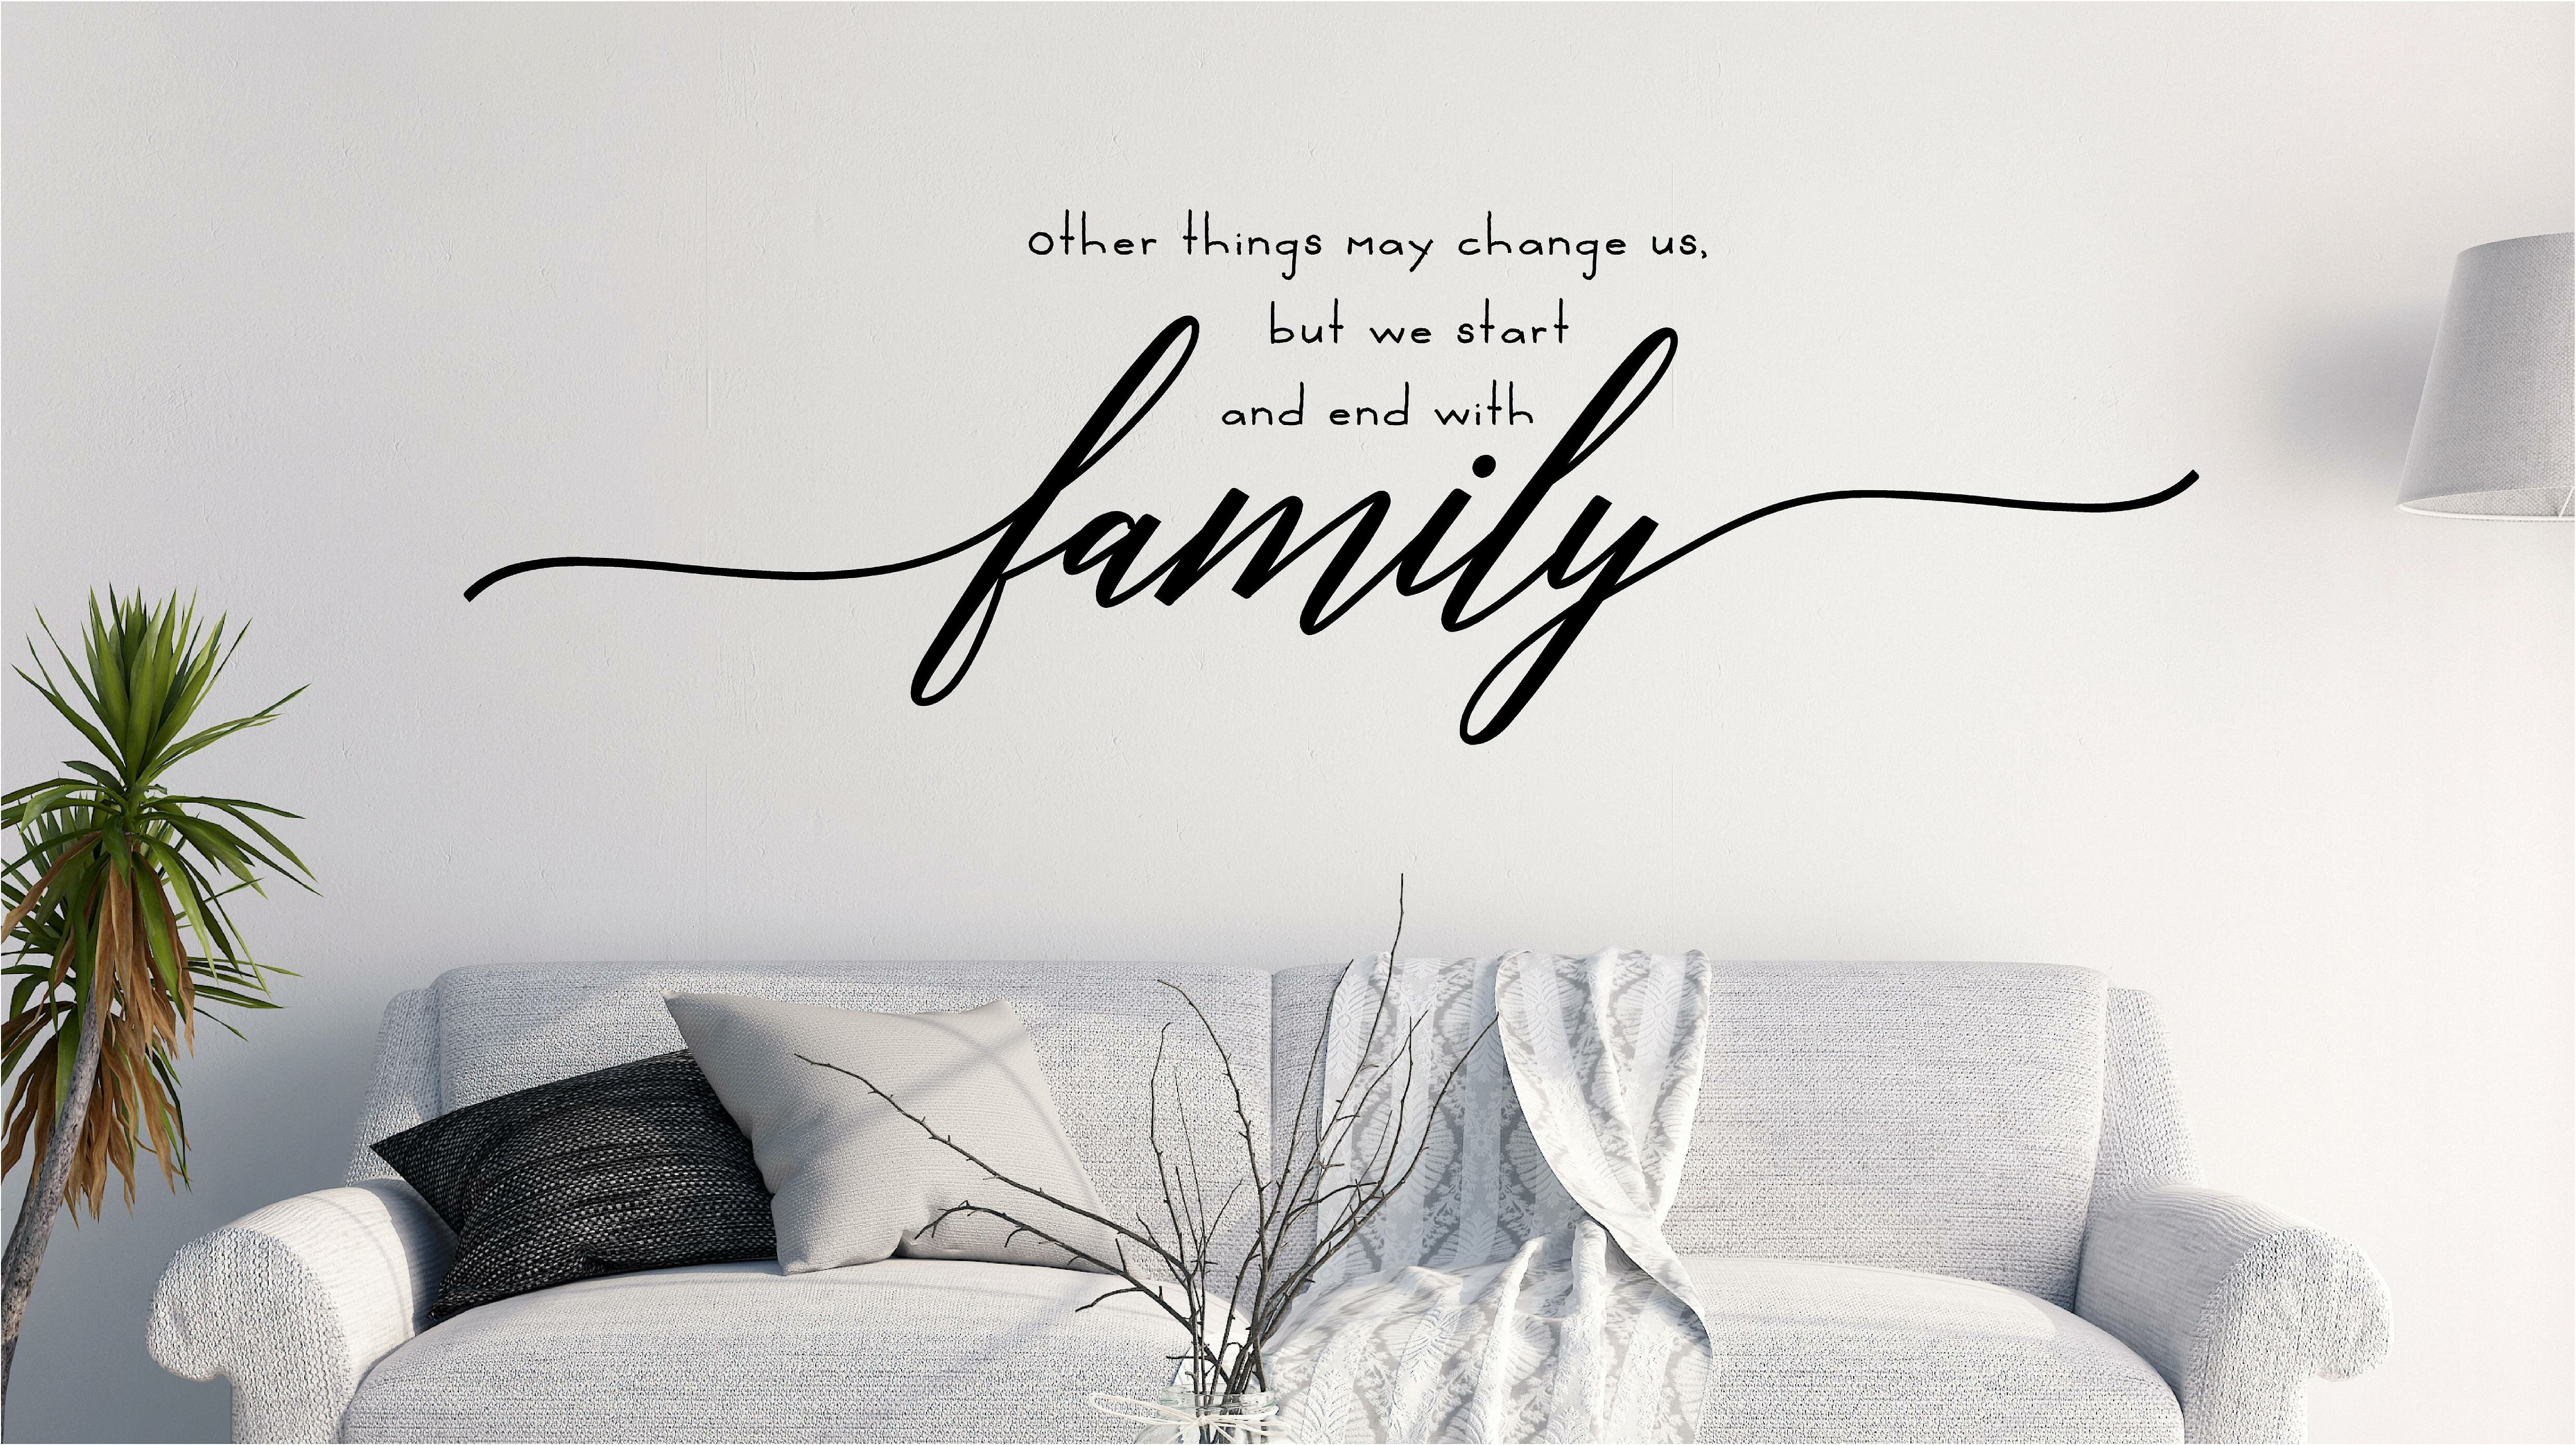 Outstanding Start And End With Family Wall Decal Beatyapartments Chair Design Images Beatyapartmentscom